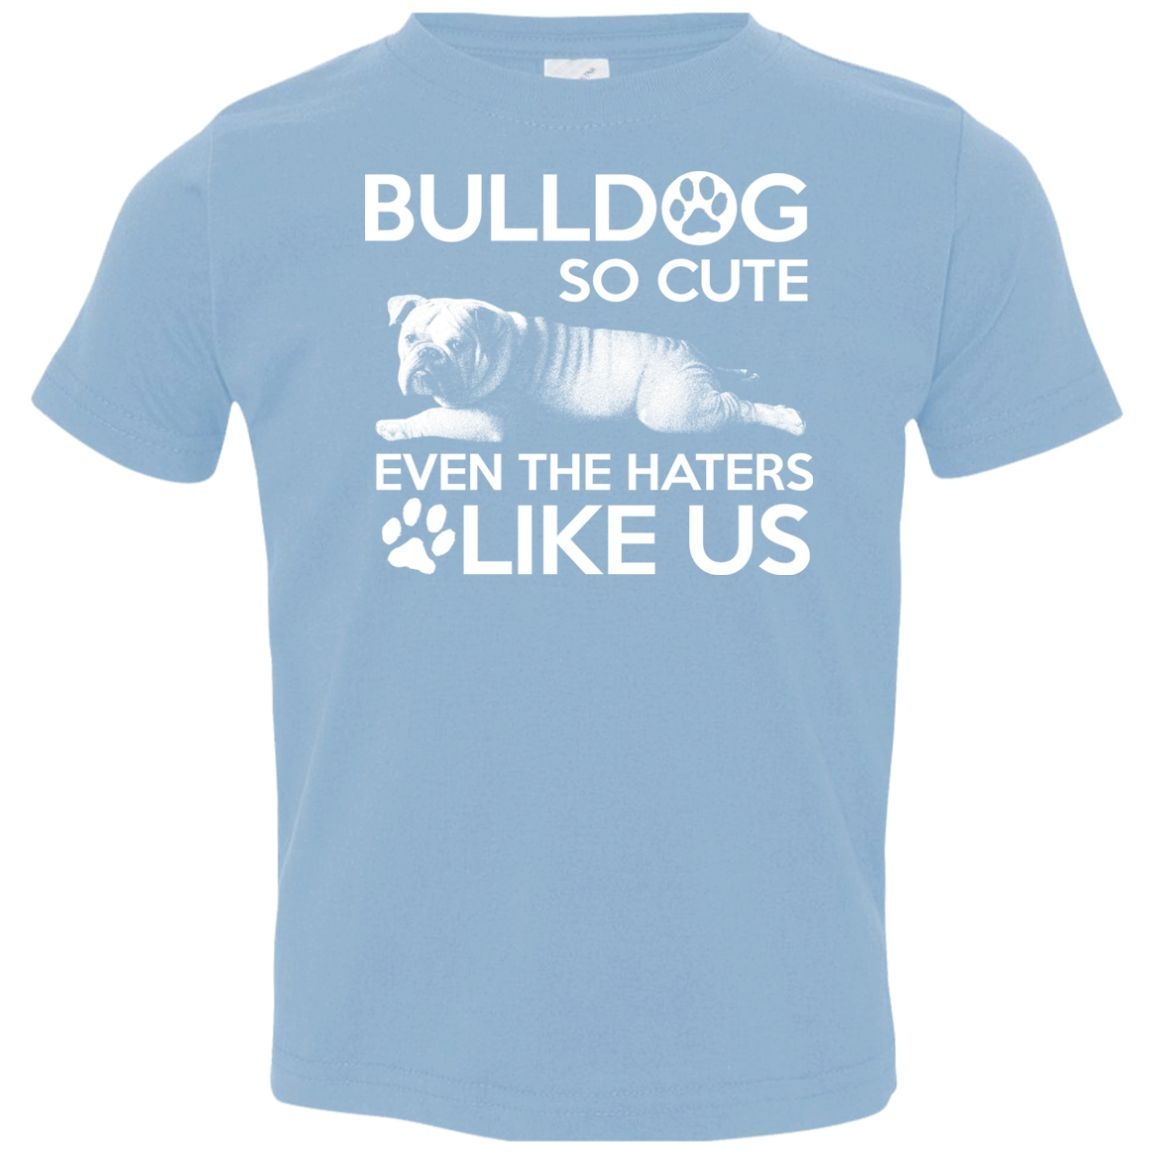 Bulldog so Cute, Even the Haters Like Us! Toddler Jersey T-Shirt